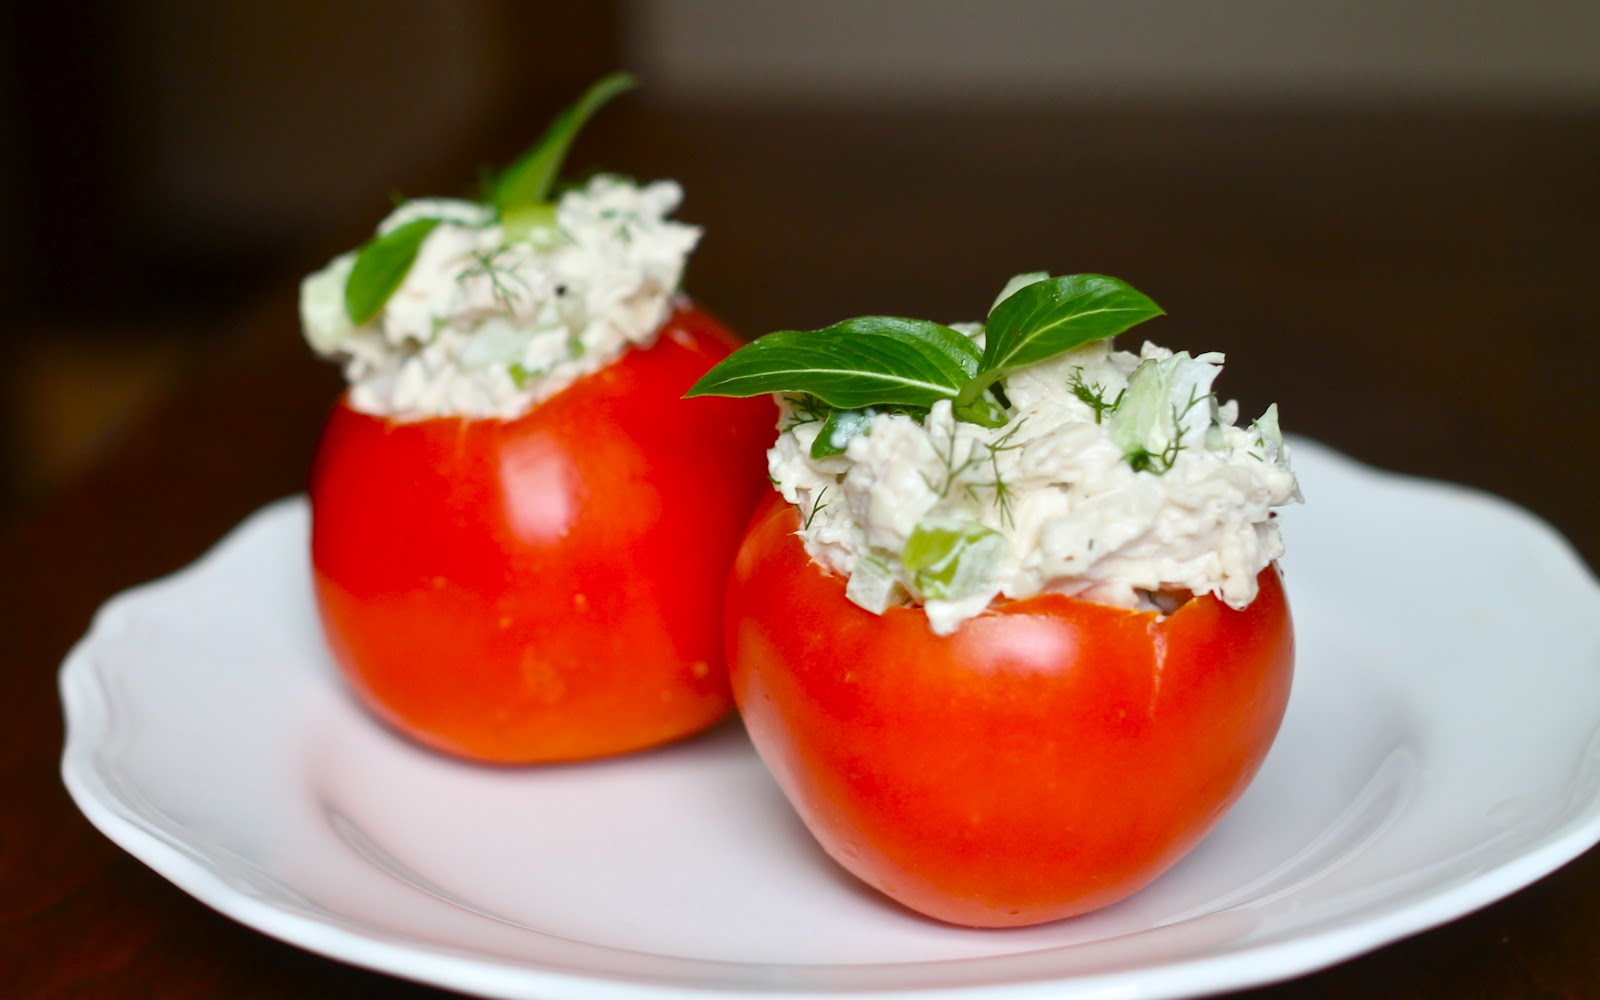 Yammie's Noshery: Cucumber Dill Chicken Salad in Tomato Cups